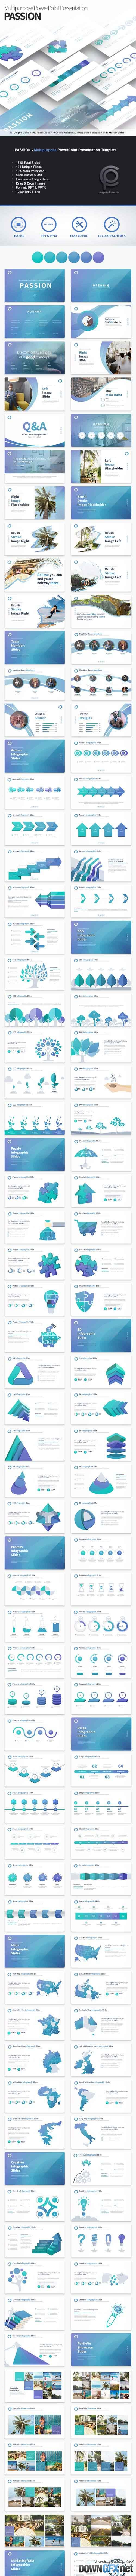 GR - PASSION - Multipurpose PowerPoint Presentation Template 19819206